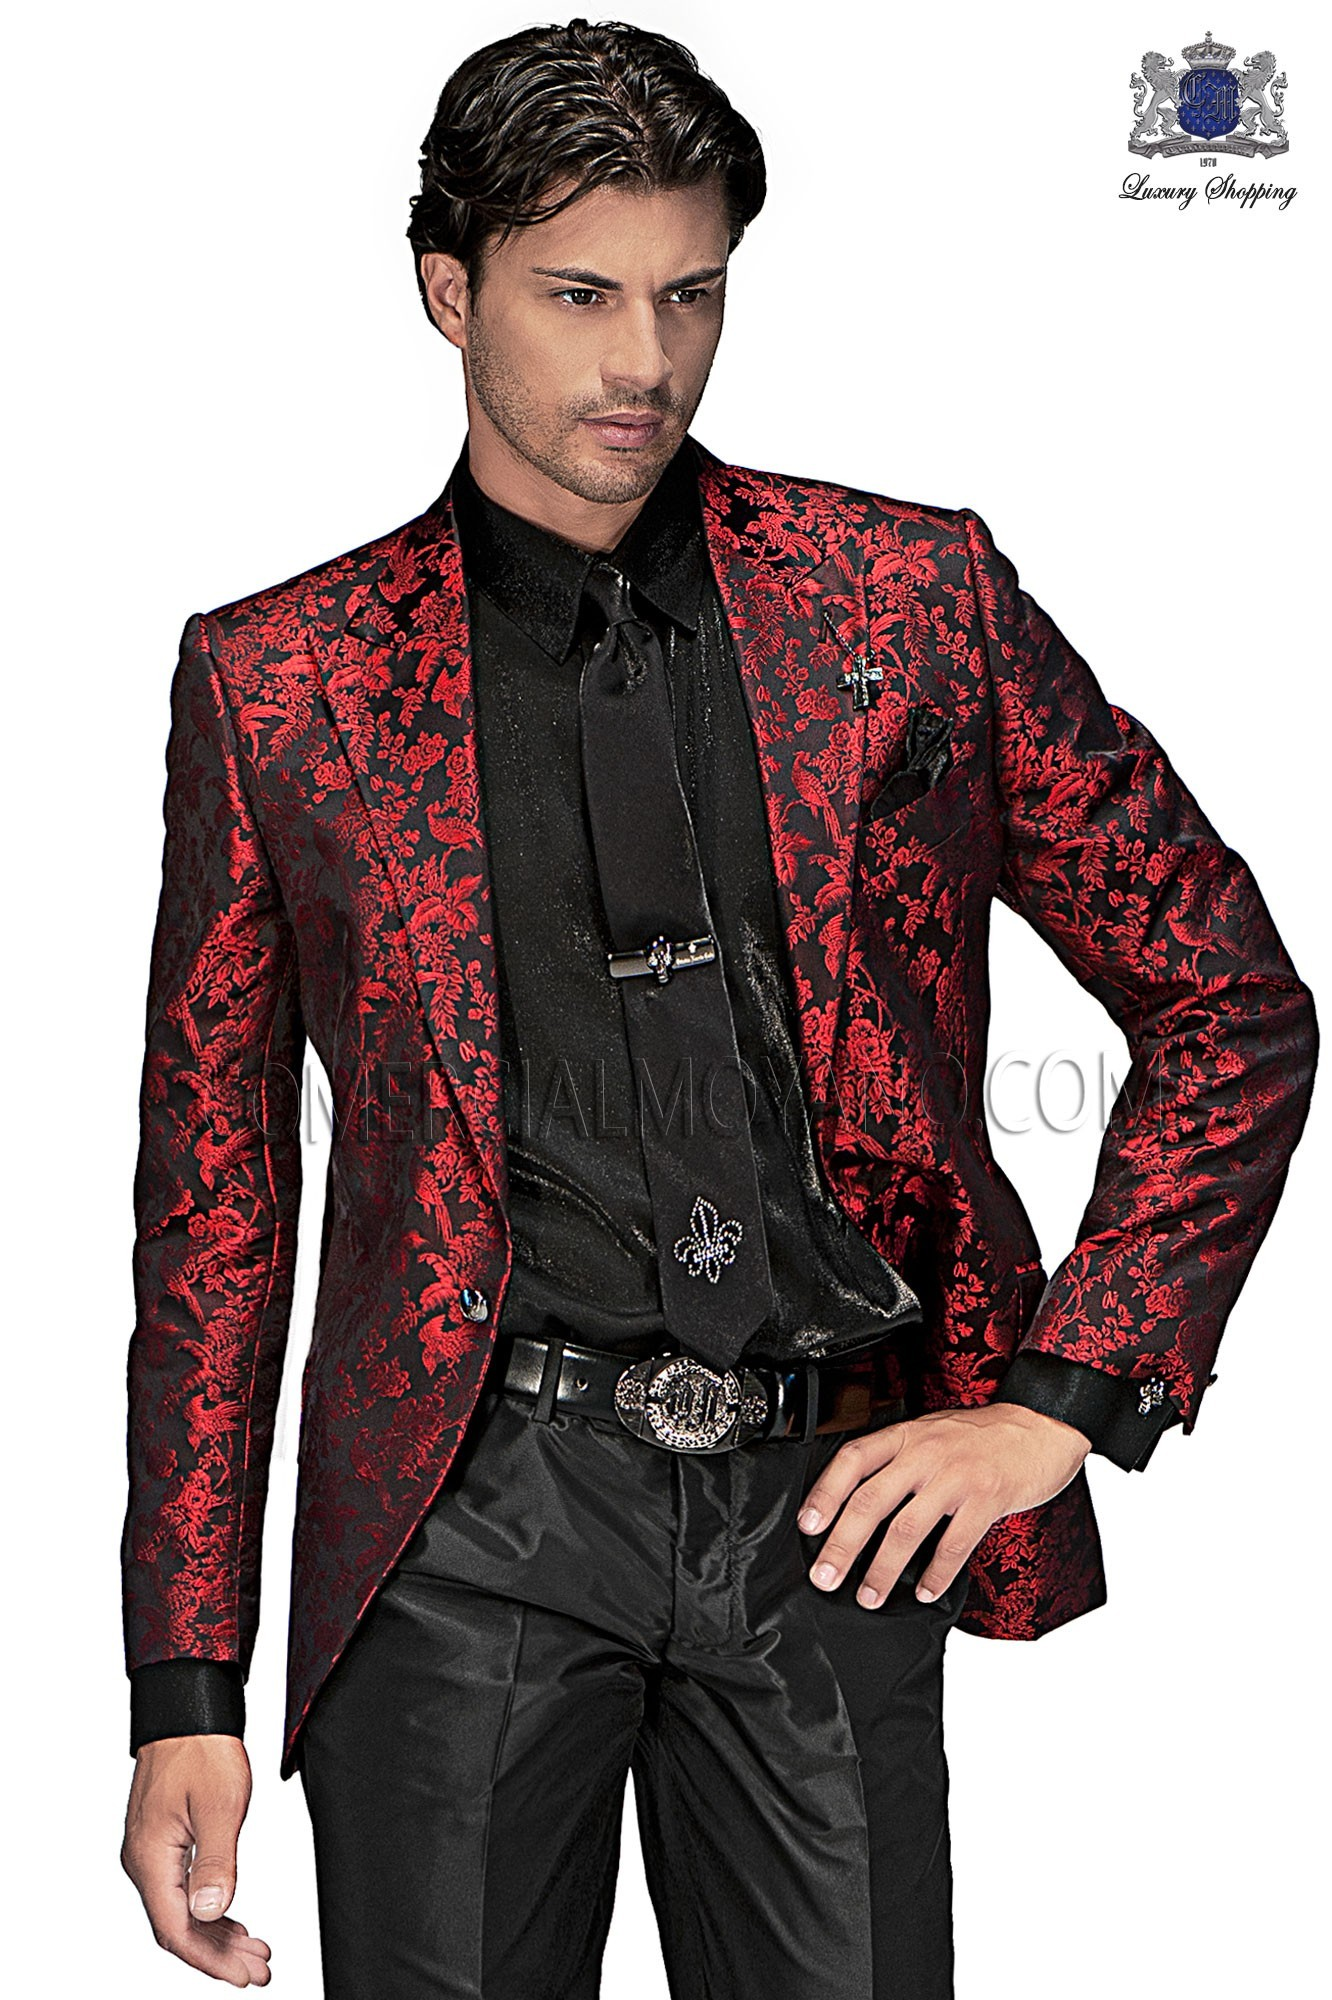 Emotion red/ black men wedding suit model 60363 Ottavio Nuccio Gala